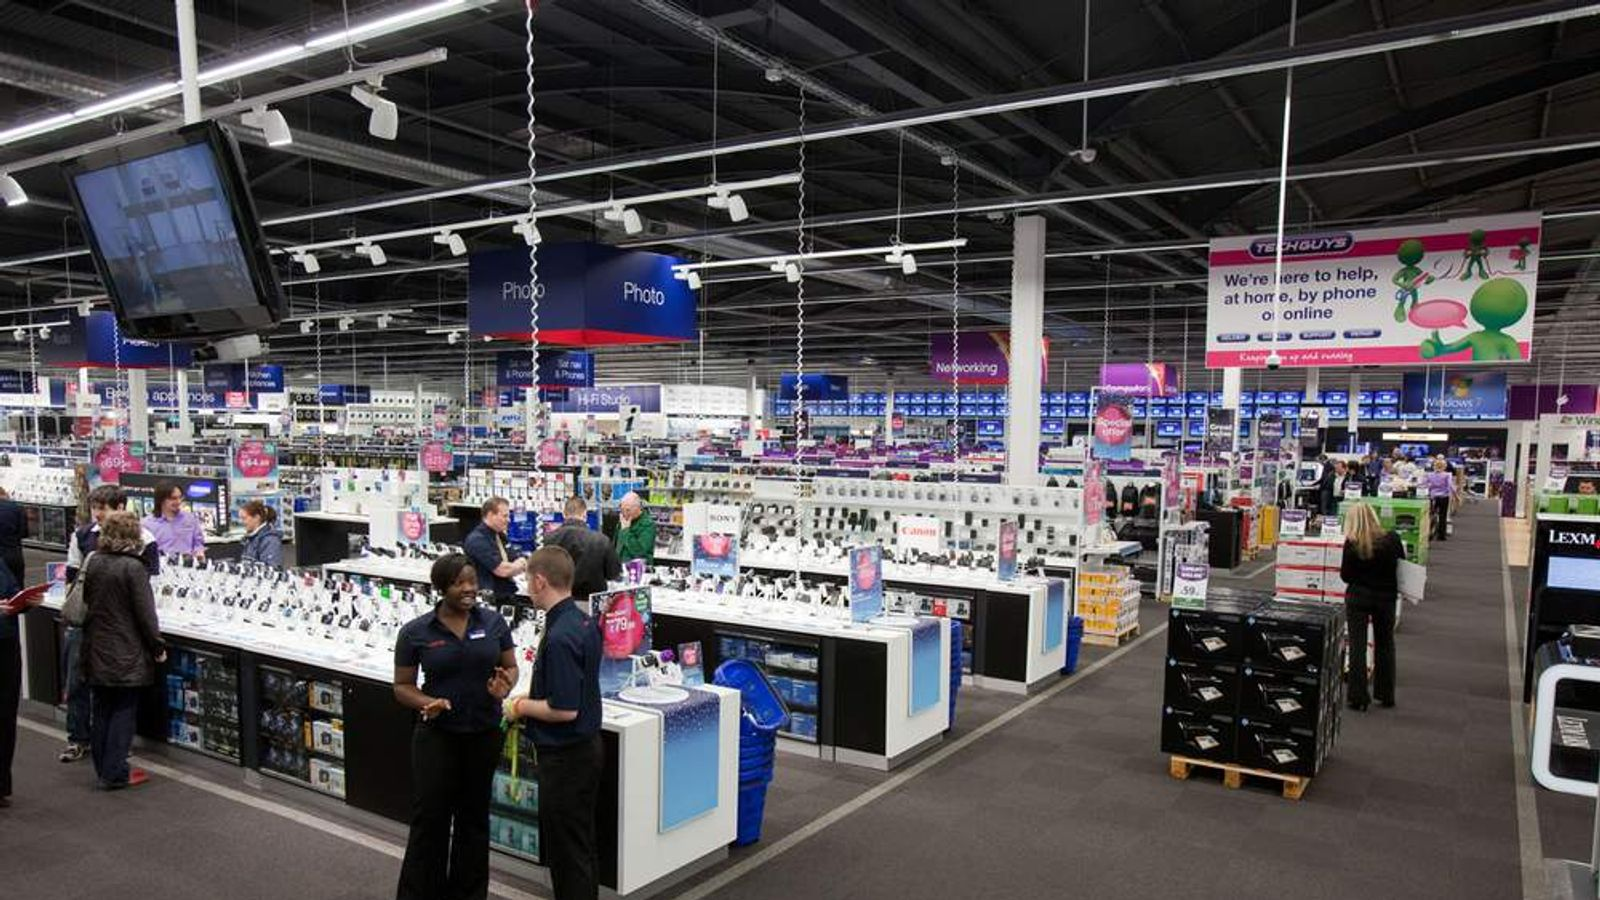 A Currys and PC World store